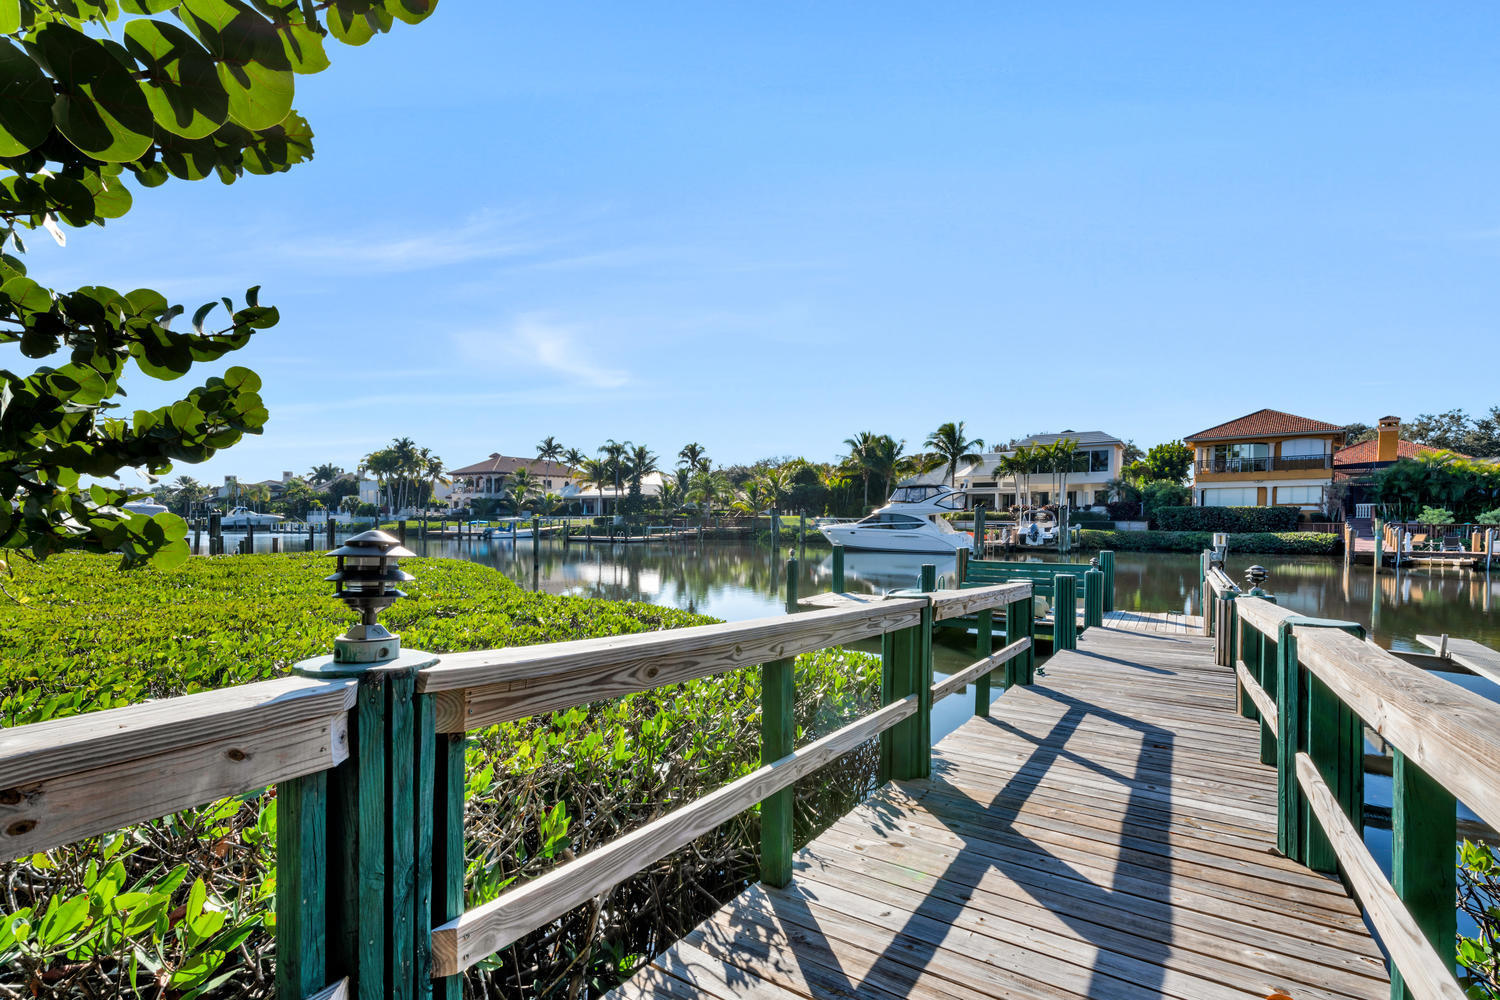 153 Commodore Drive, Jupiter, Florida 33477, 5 Bedrooms Bedrooms, ,5.1 BathroomsBathrooms,A,Single family,Commodore,RX-10499852